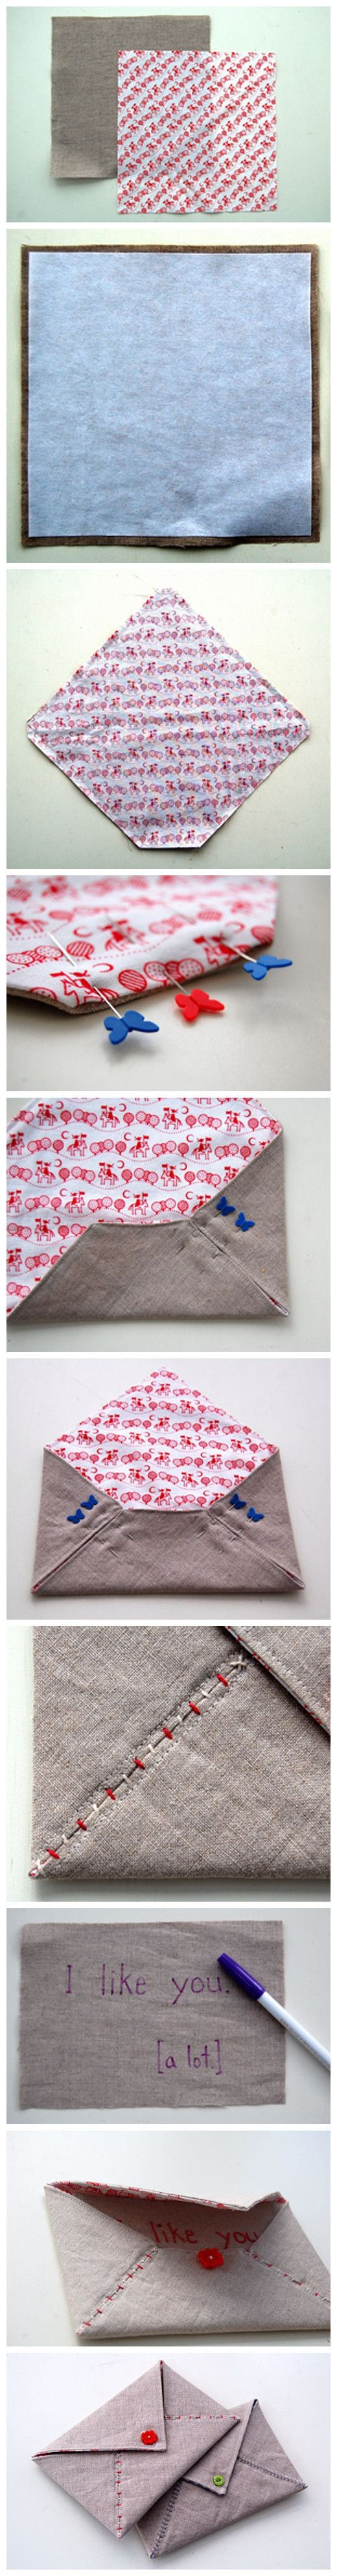 DIY: fabric envelope- This could be used as an eco friendly snack/sandwich bag- LOVE this